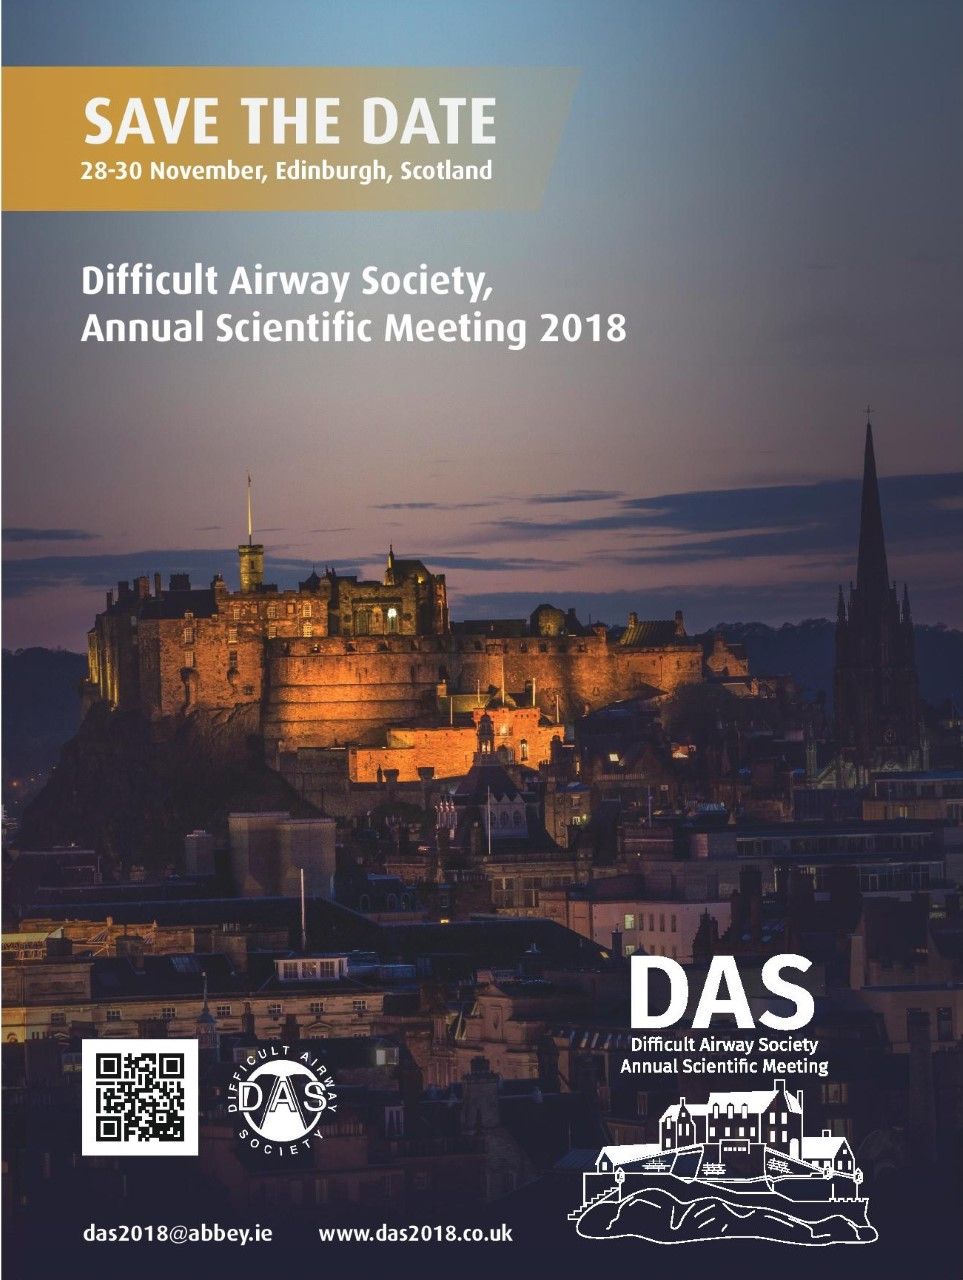 Difficult Airway Society Annual Scientific Meeting 2018